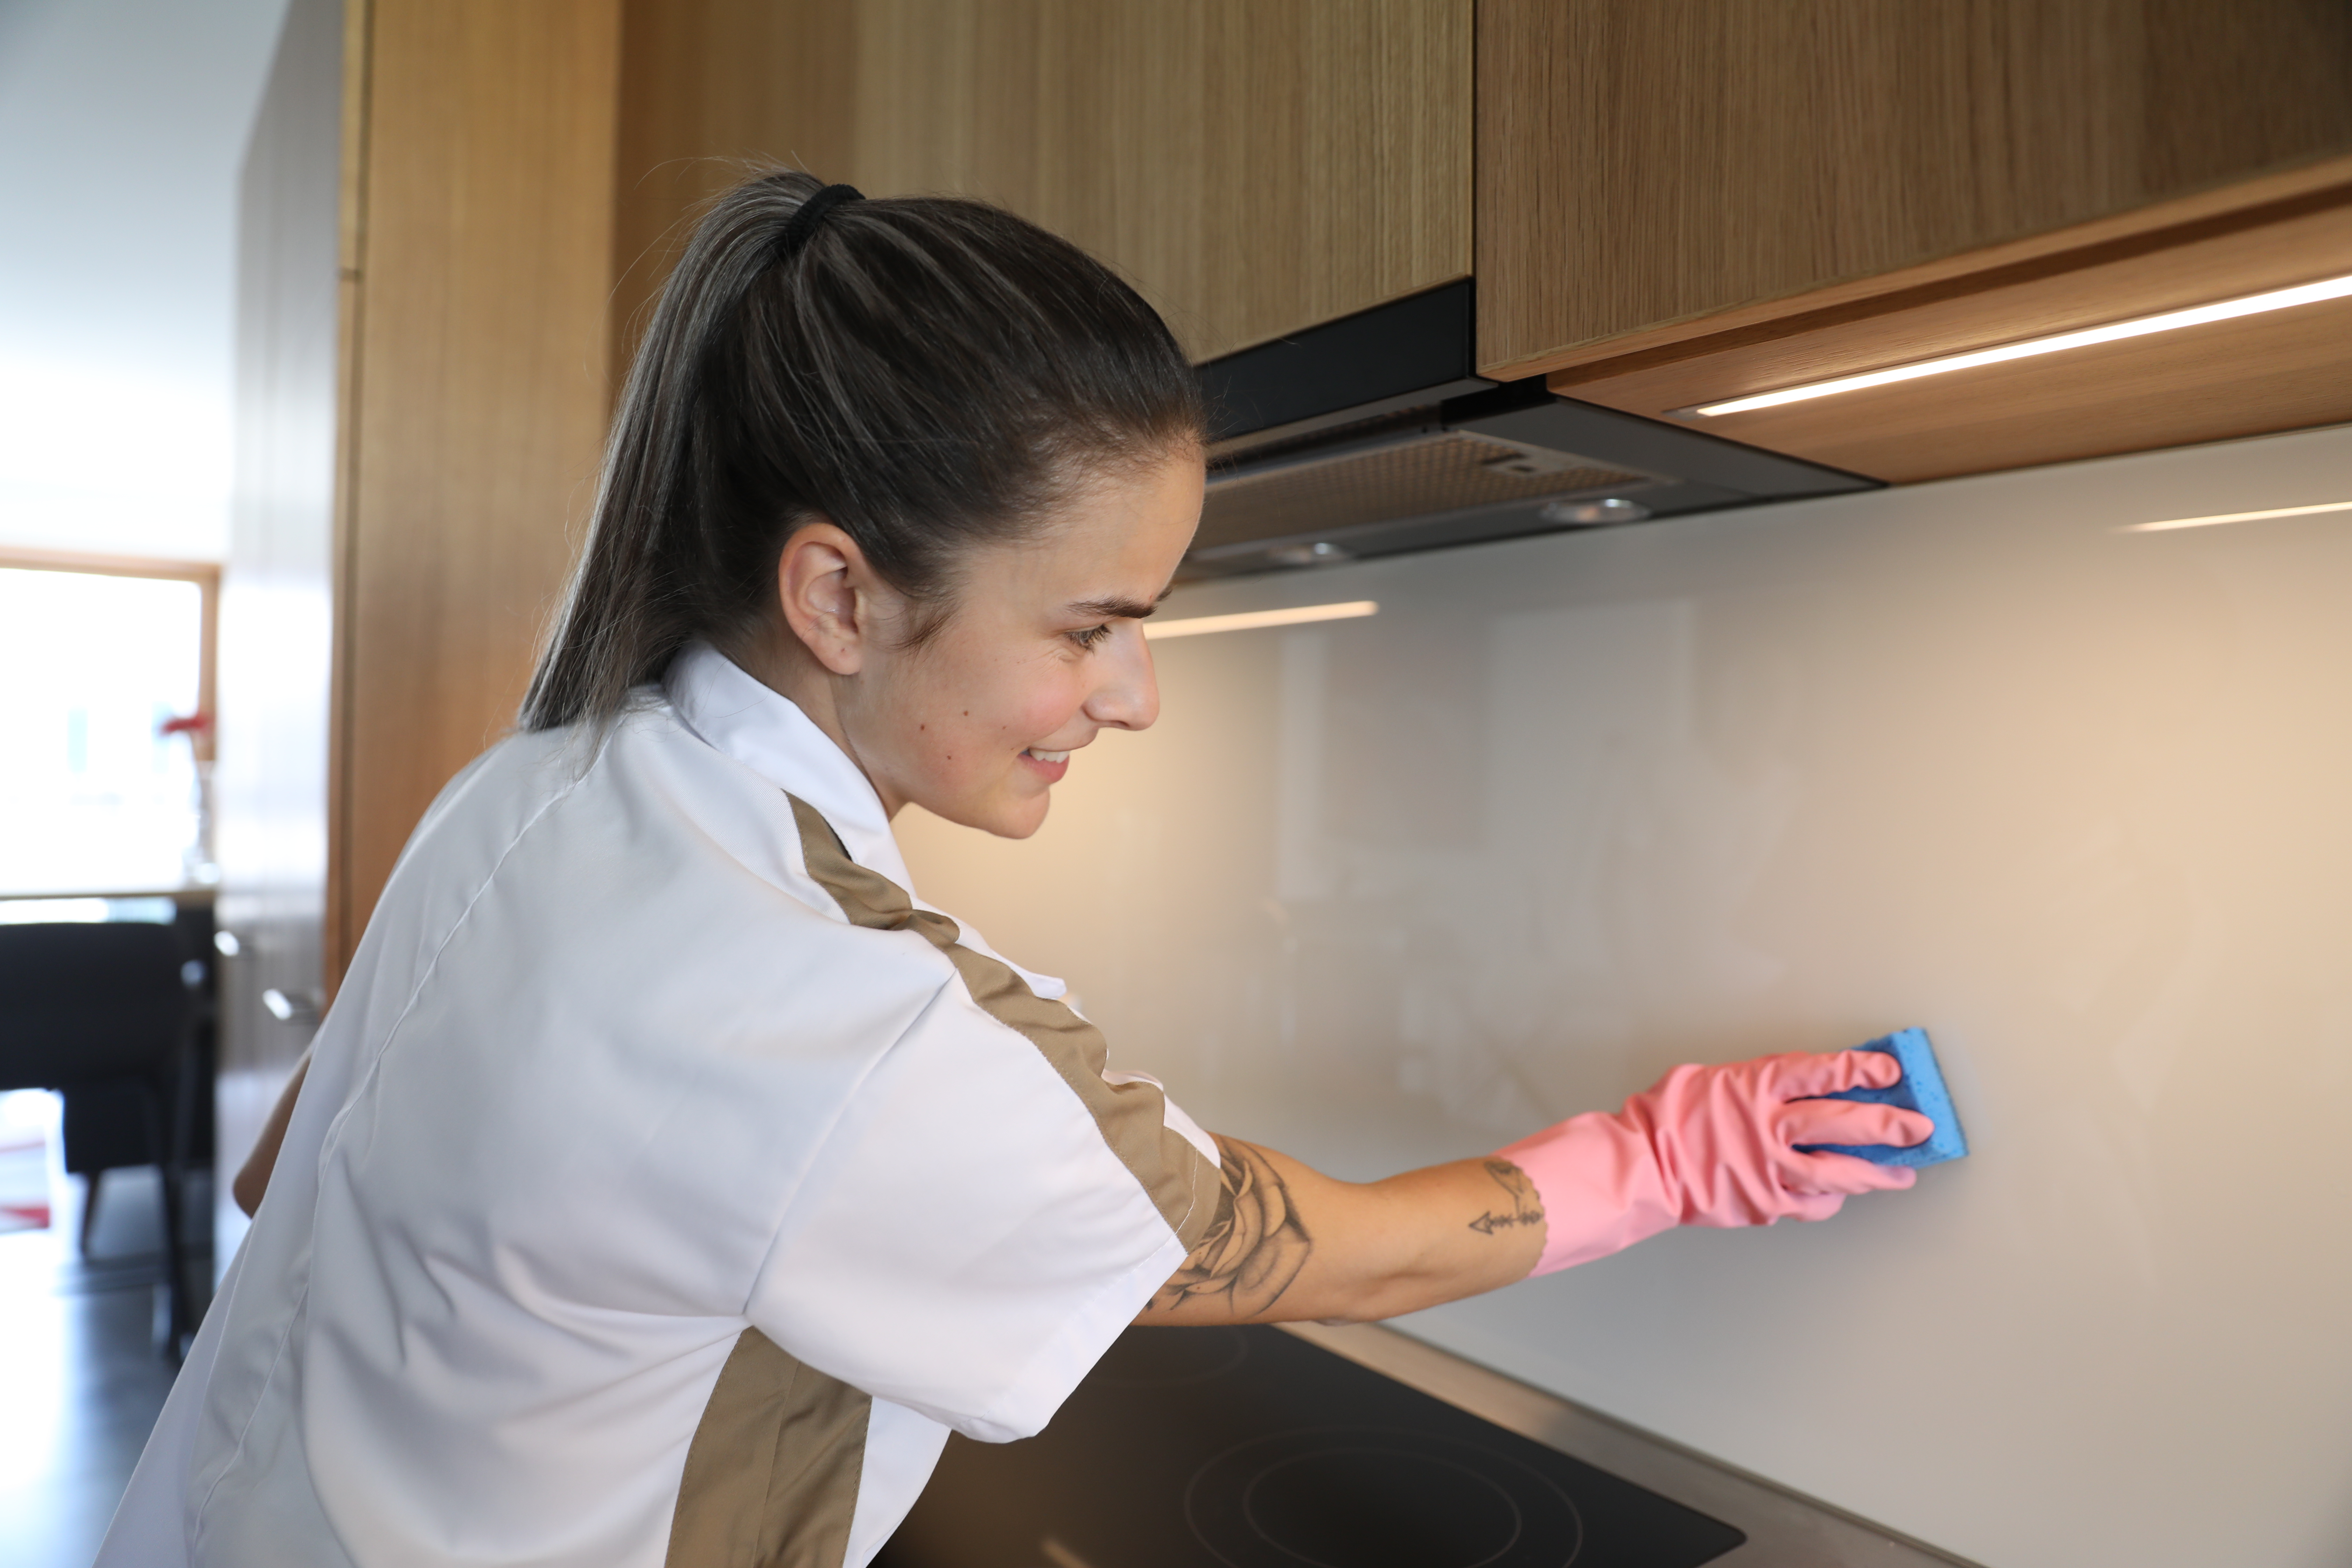 Crown Facility - Cleaning Kitchen Wall